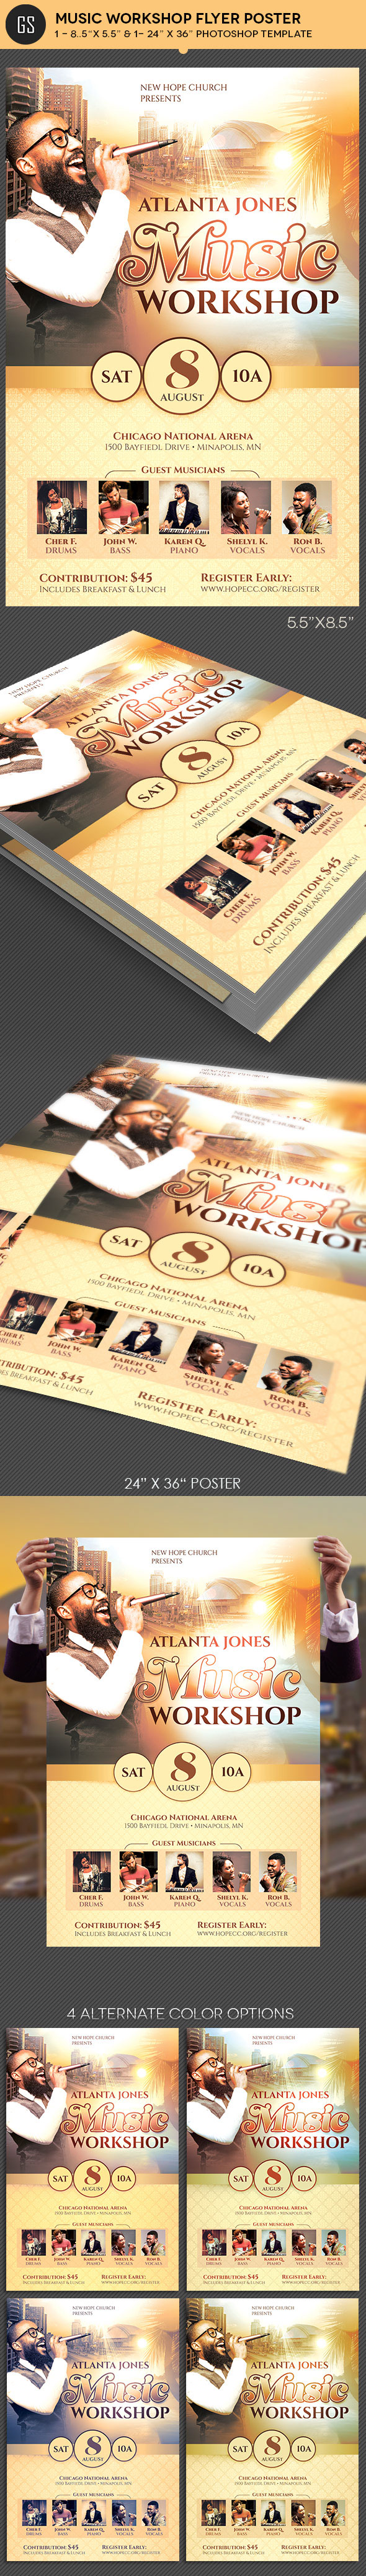 Music Workshop Flyer Poster Template On Behance